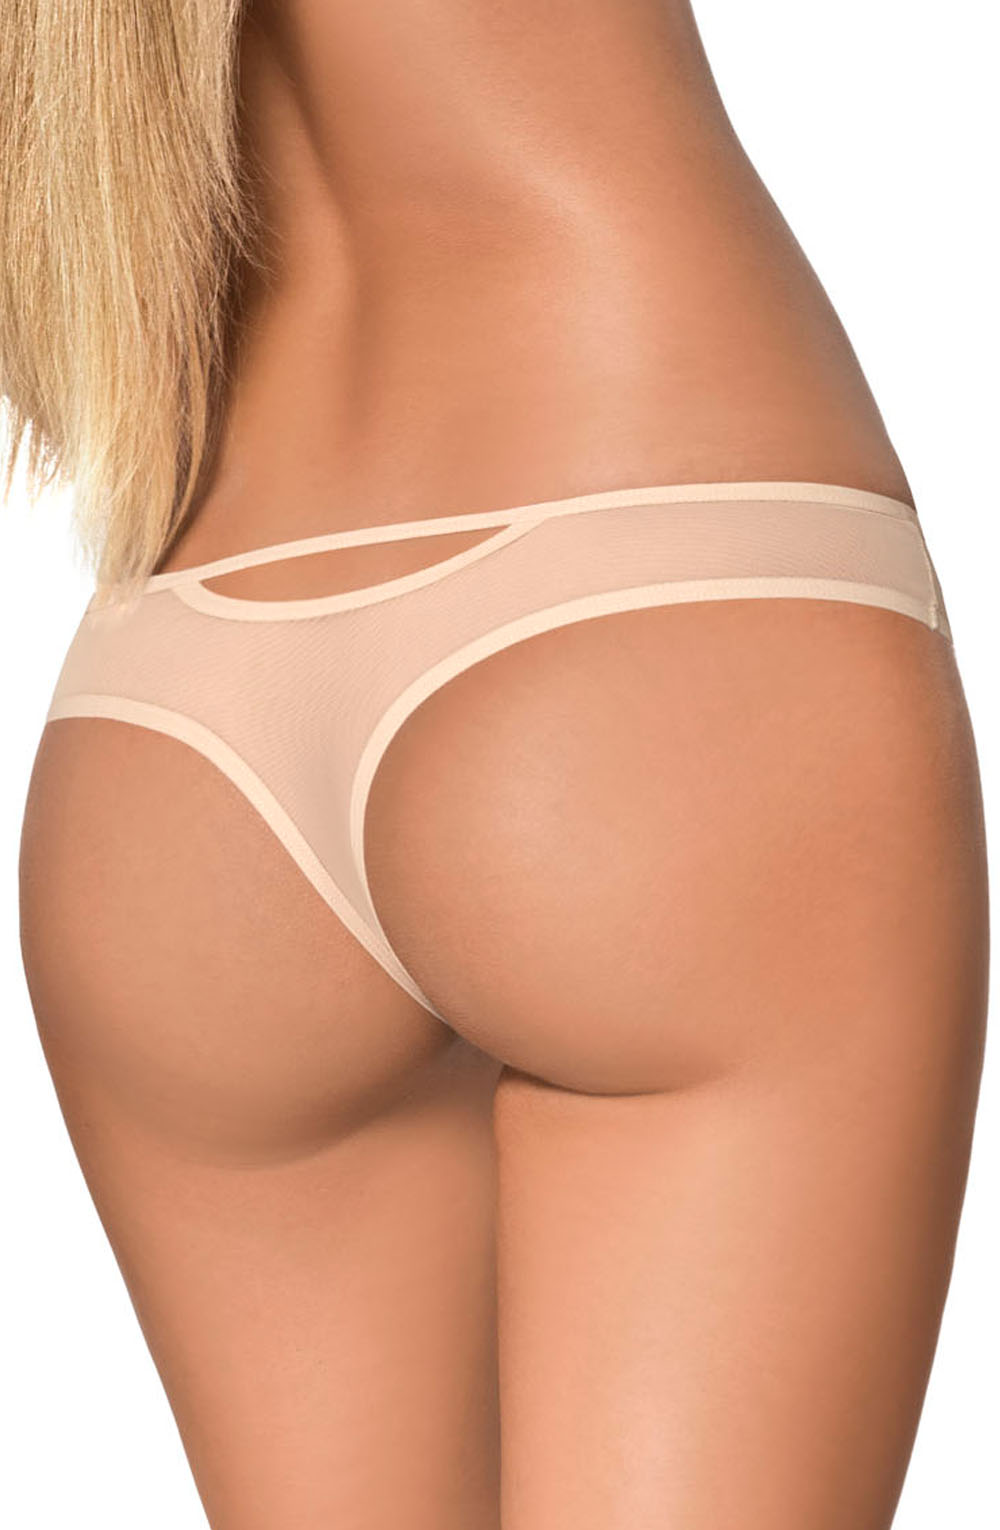 ABBY_BEIGE_STRING_CLOSE_REAR